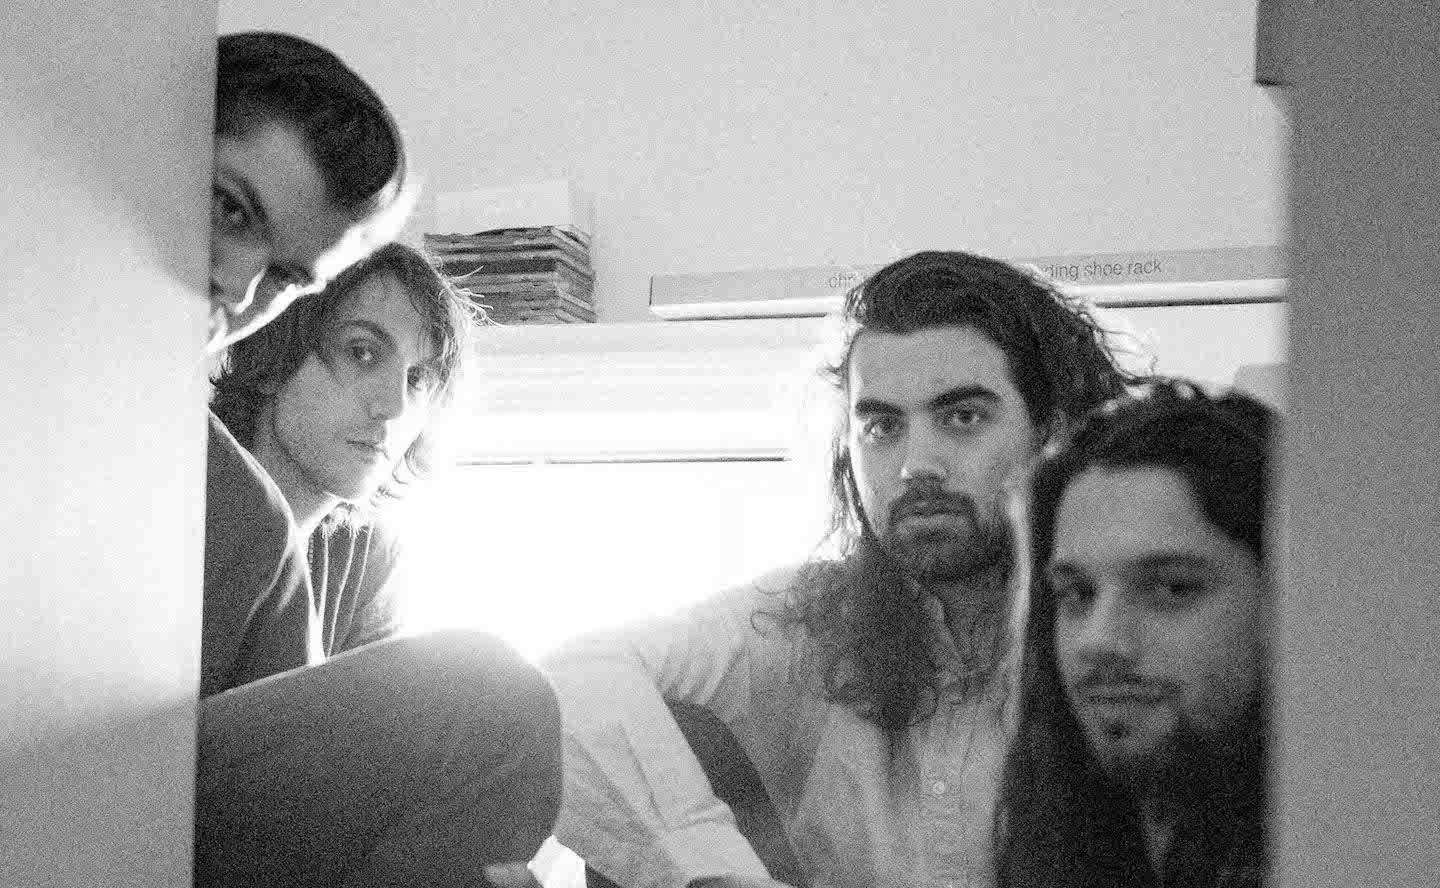 Turnover share 'Humblest Pleasures' track